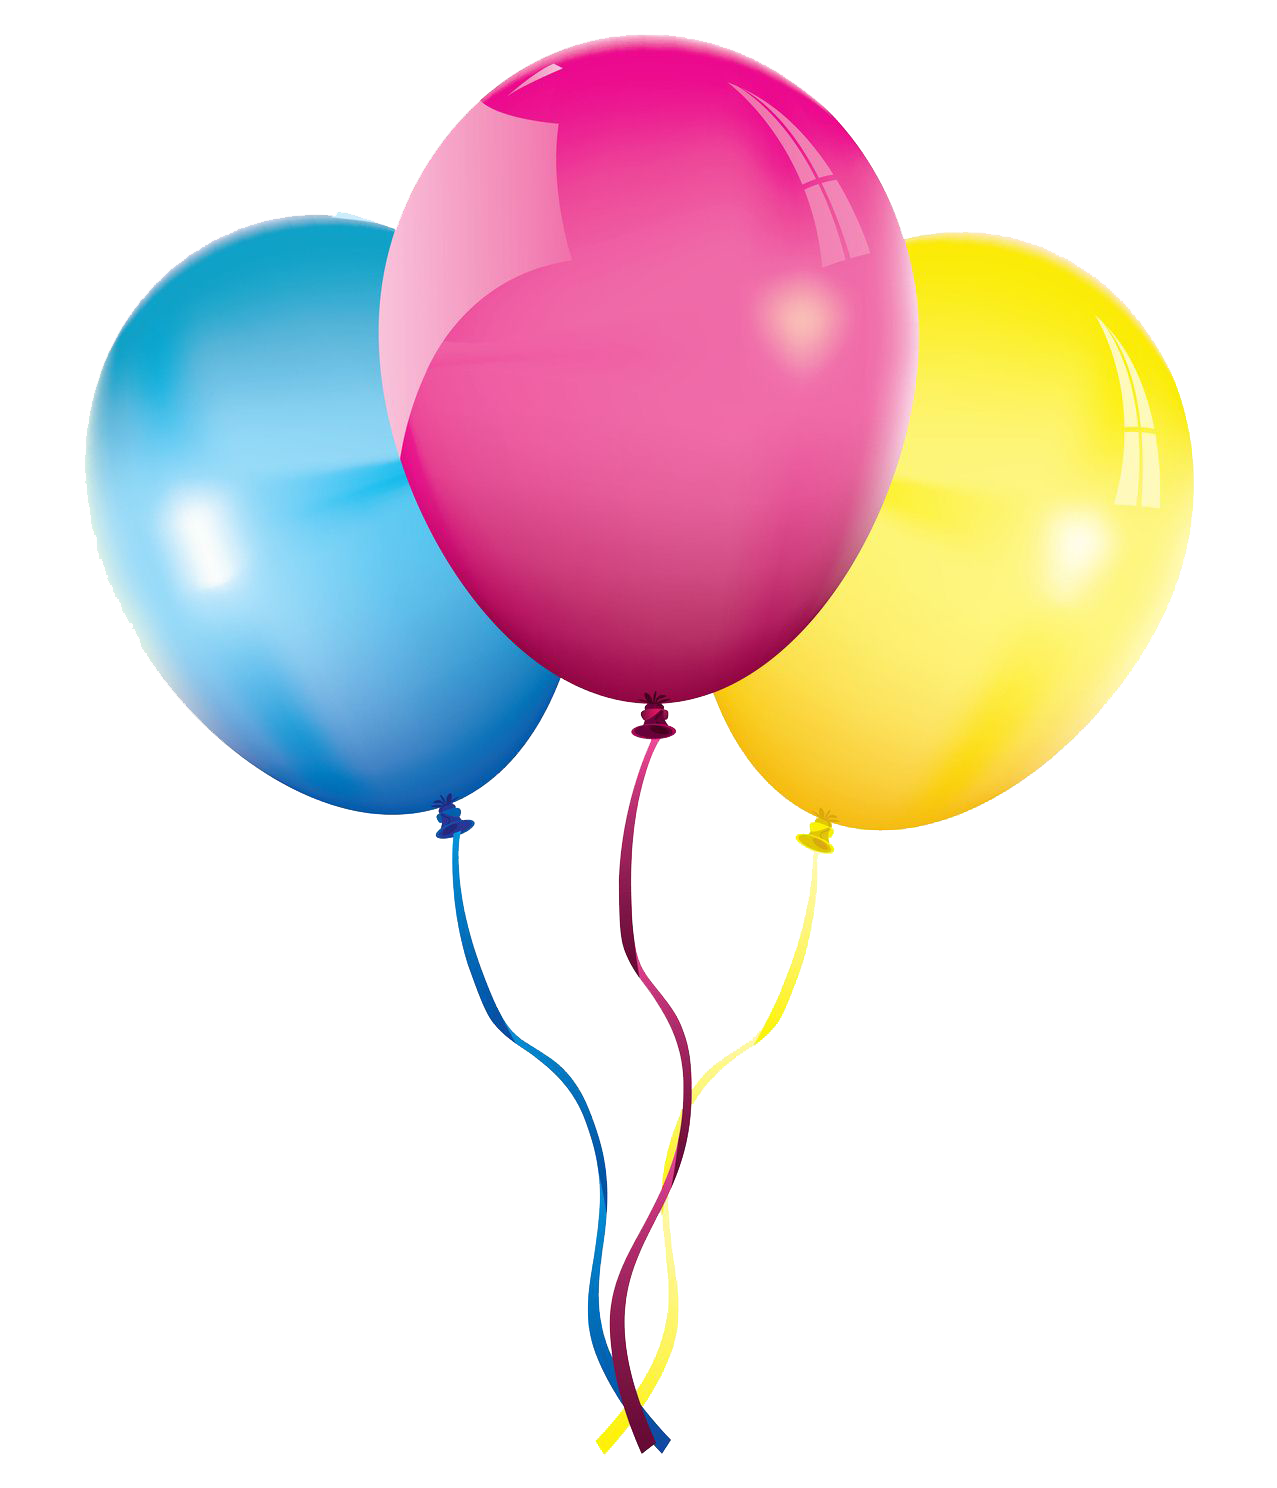 Balloons PNG File - Balloon PNG